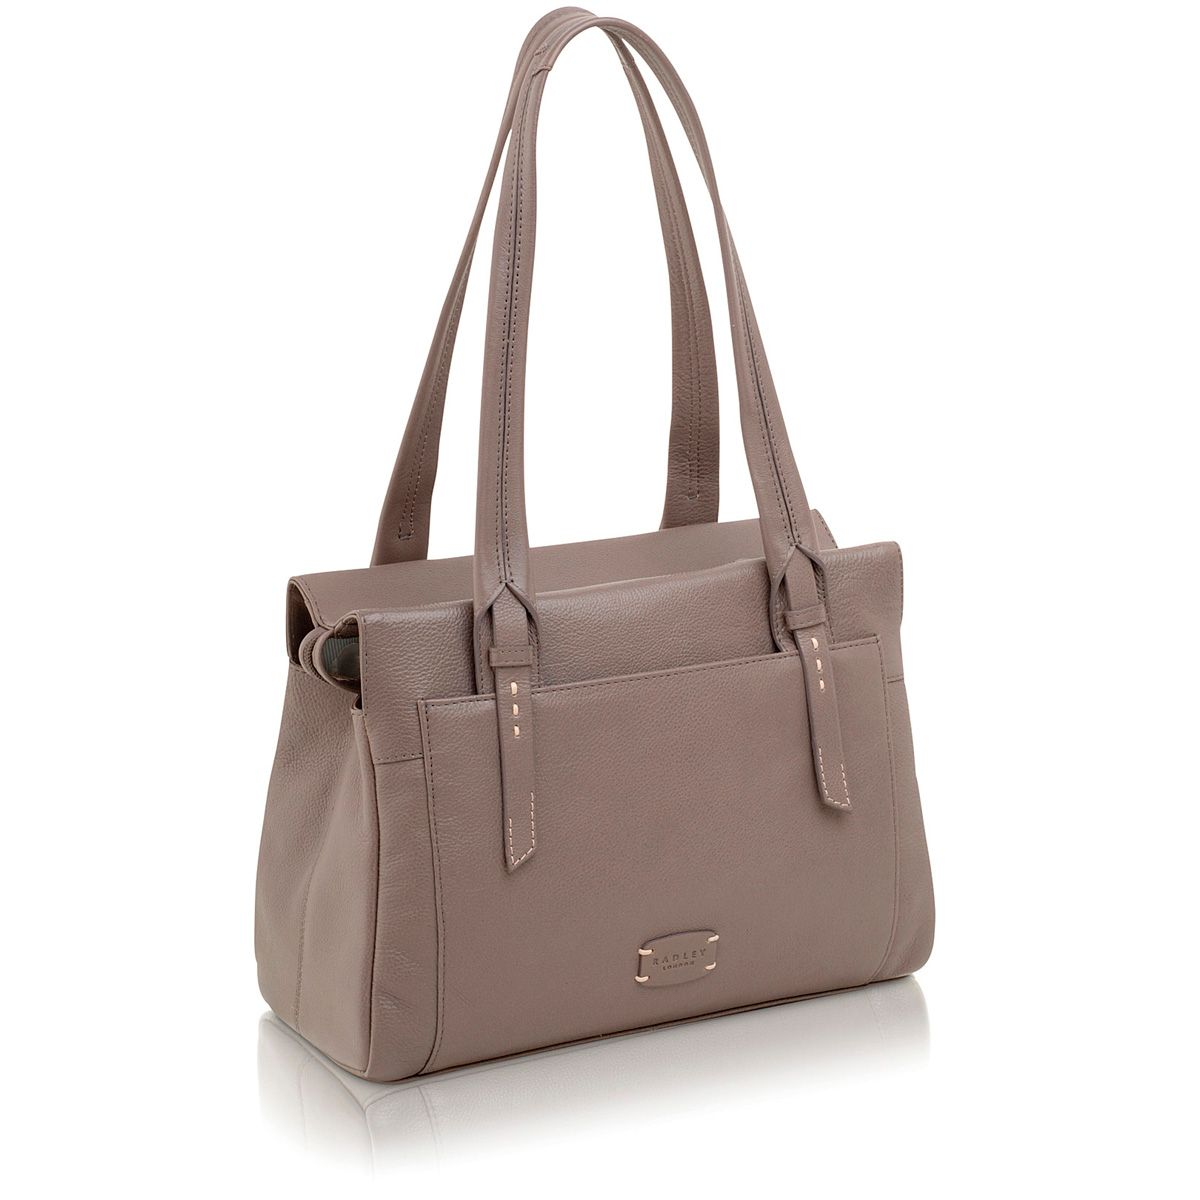 Barnsley grey leather medium shoulder bag